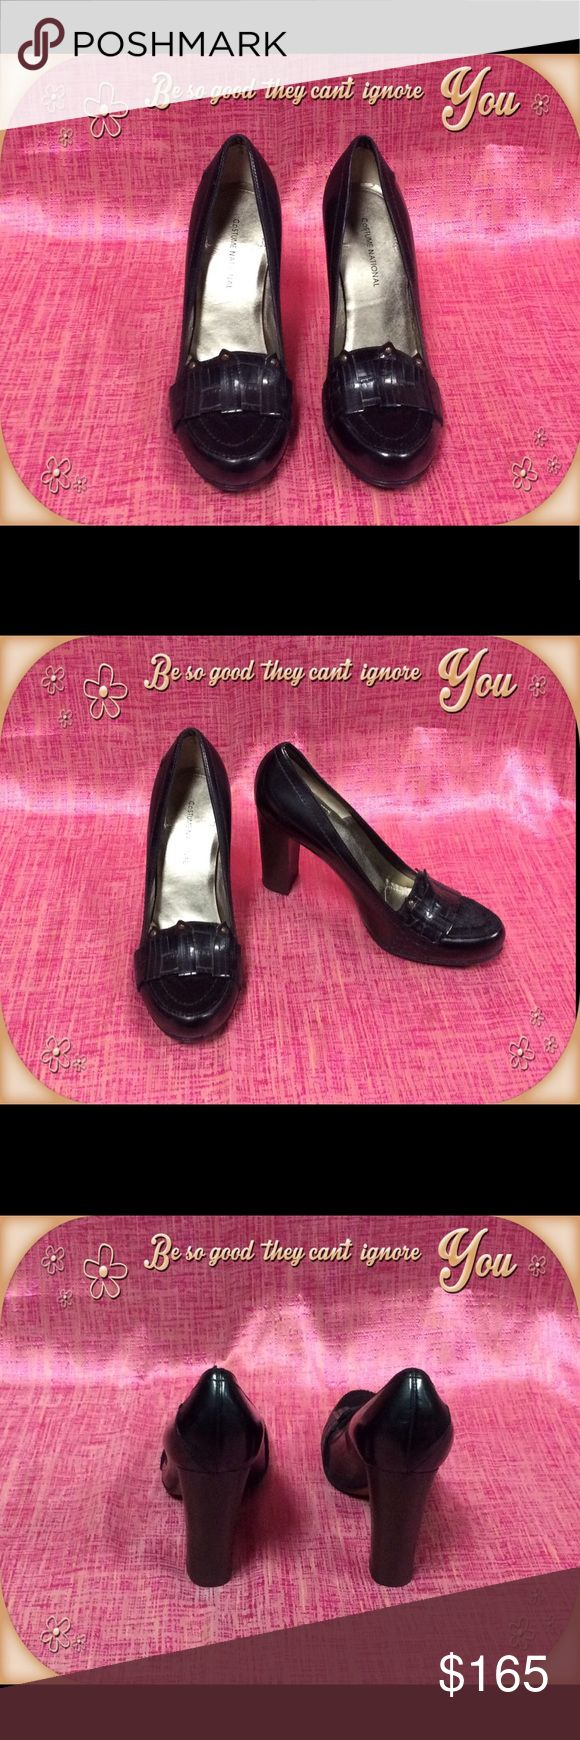 Authentic Costume National Heels Authentic black Costume National heels. Heels are made in Italy and in excellent condition. Shoes worn only a couple of times. Size 38 or US 8 Costume National Shoes Heels